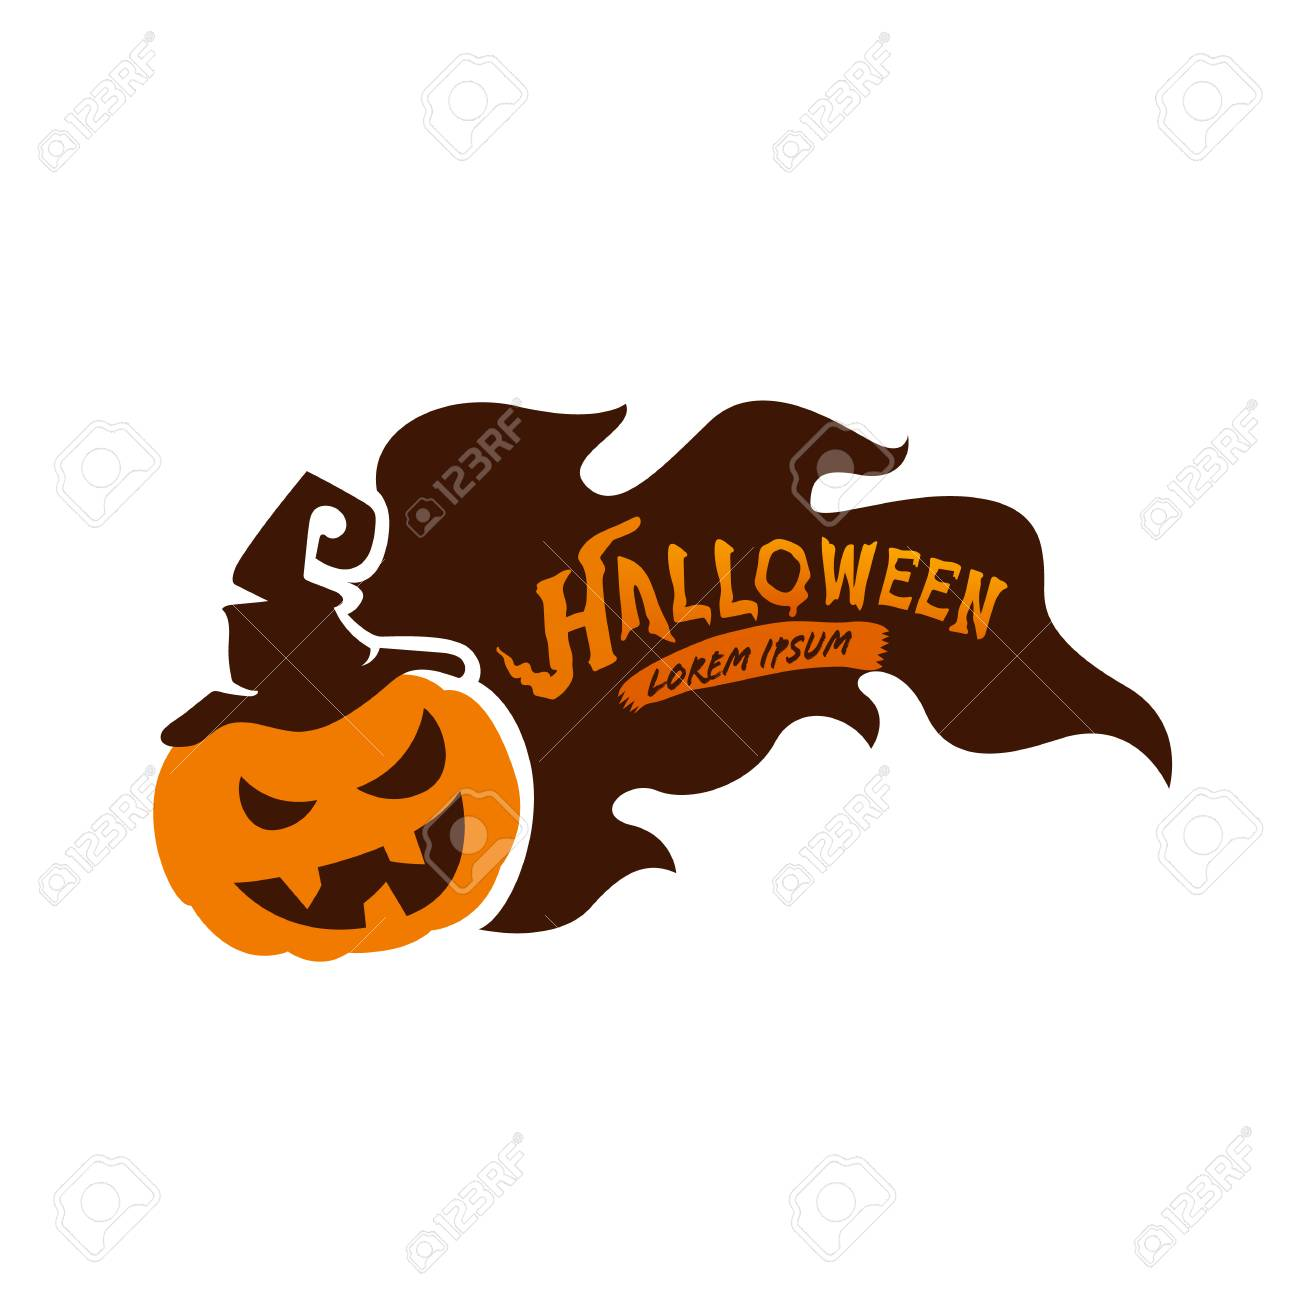 Halloween Sale Design Template Vector Illustration Stock Vector   87379323